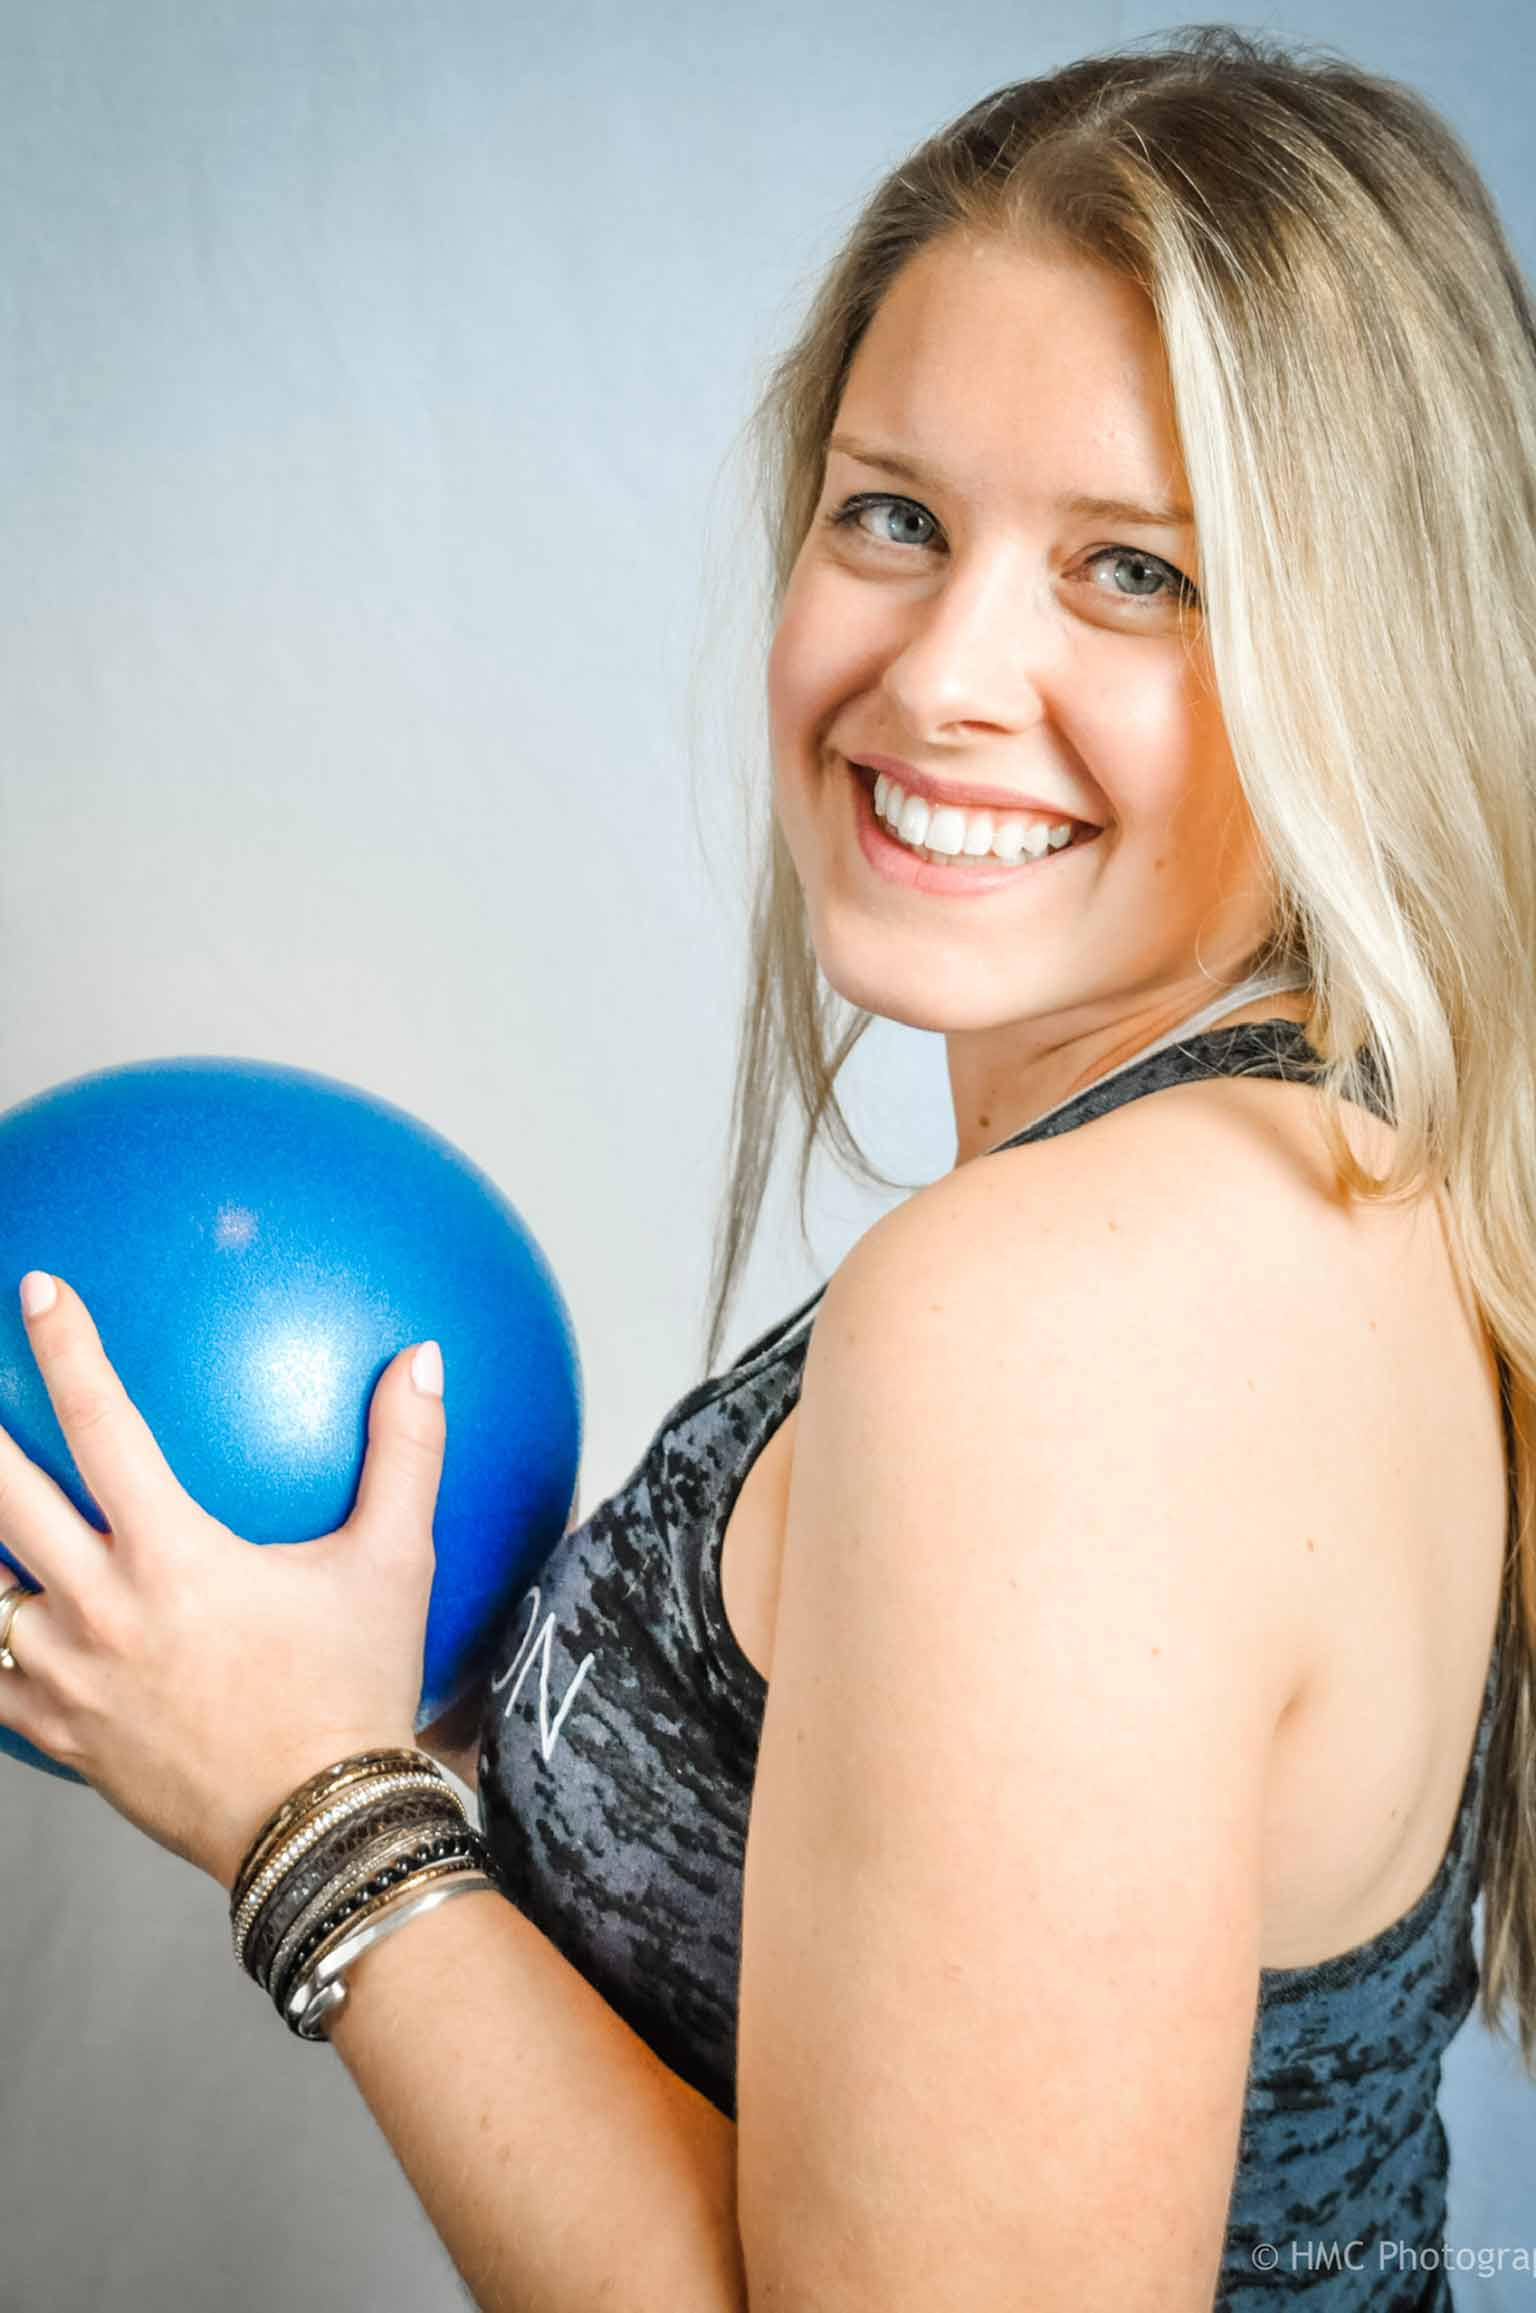 Sarah Foss is an instructor at Precision Pilates